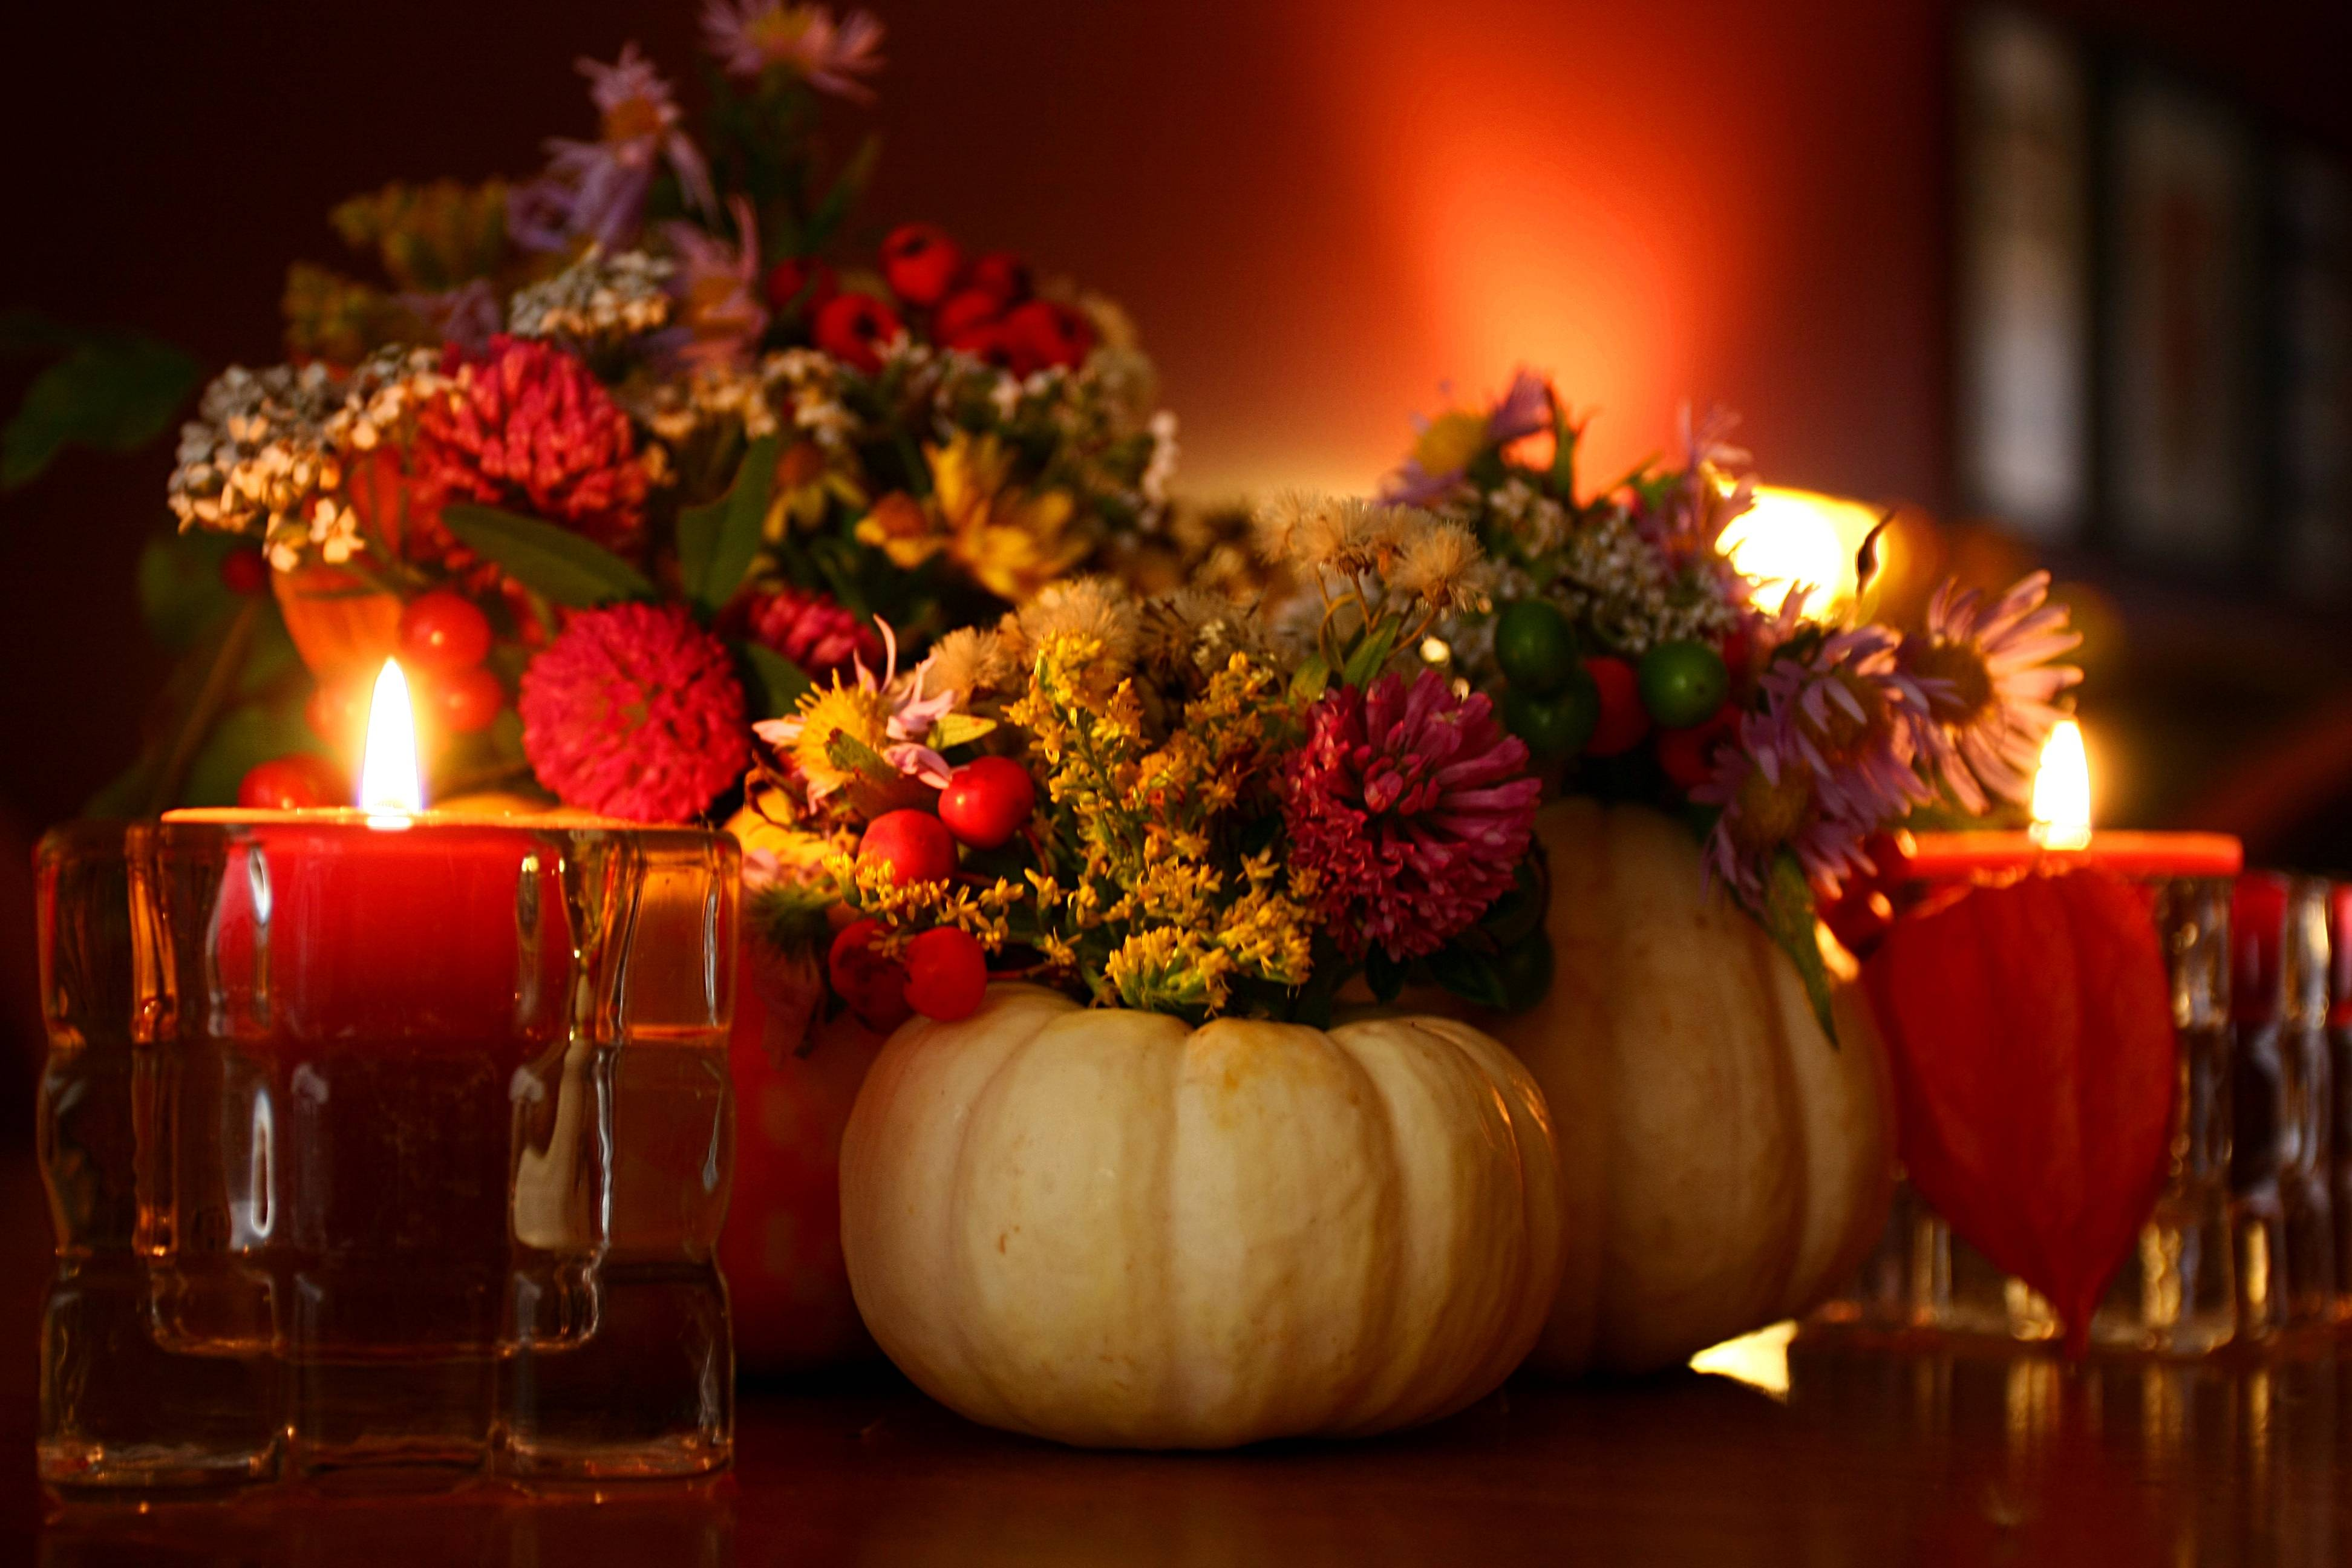 Thanksgiving with candles